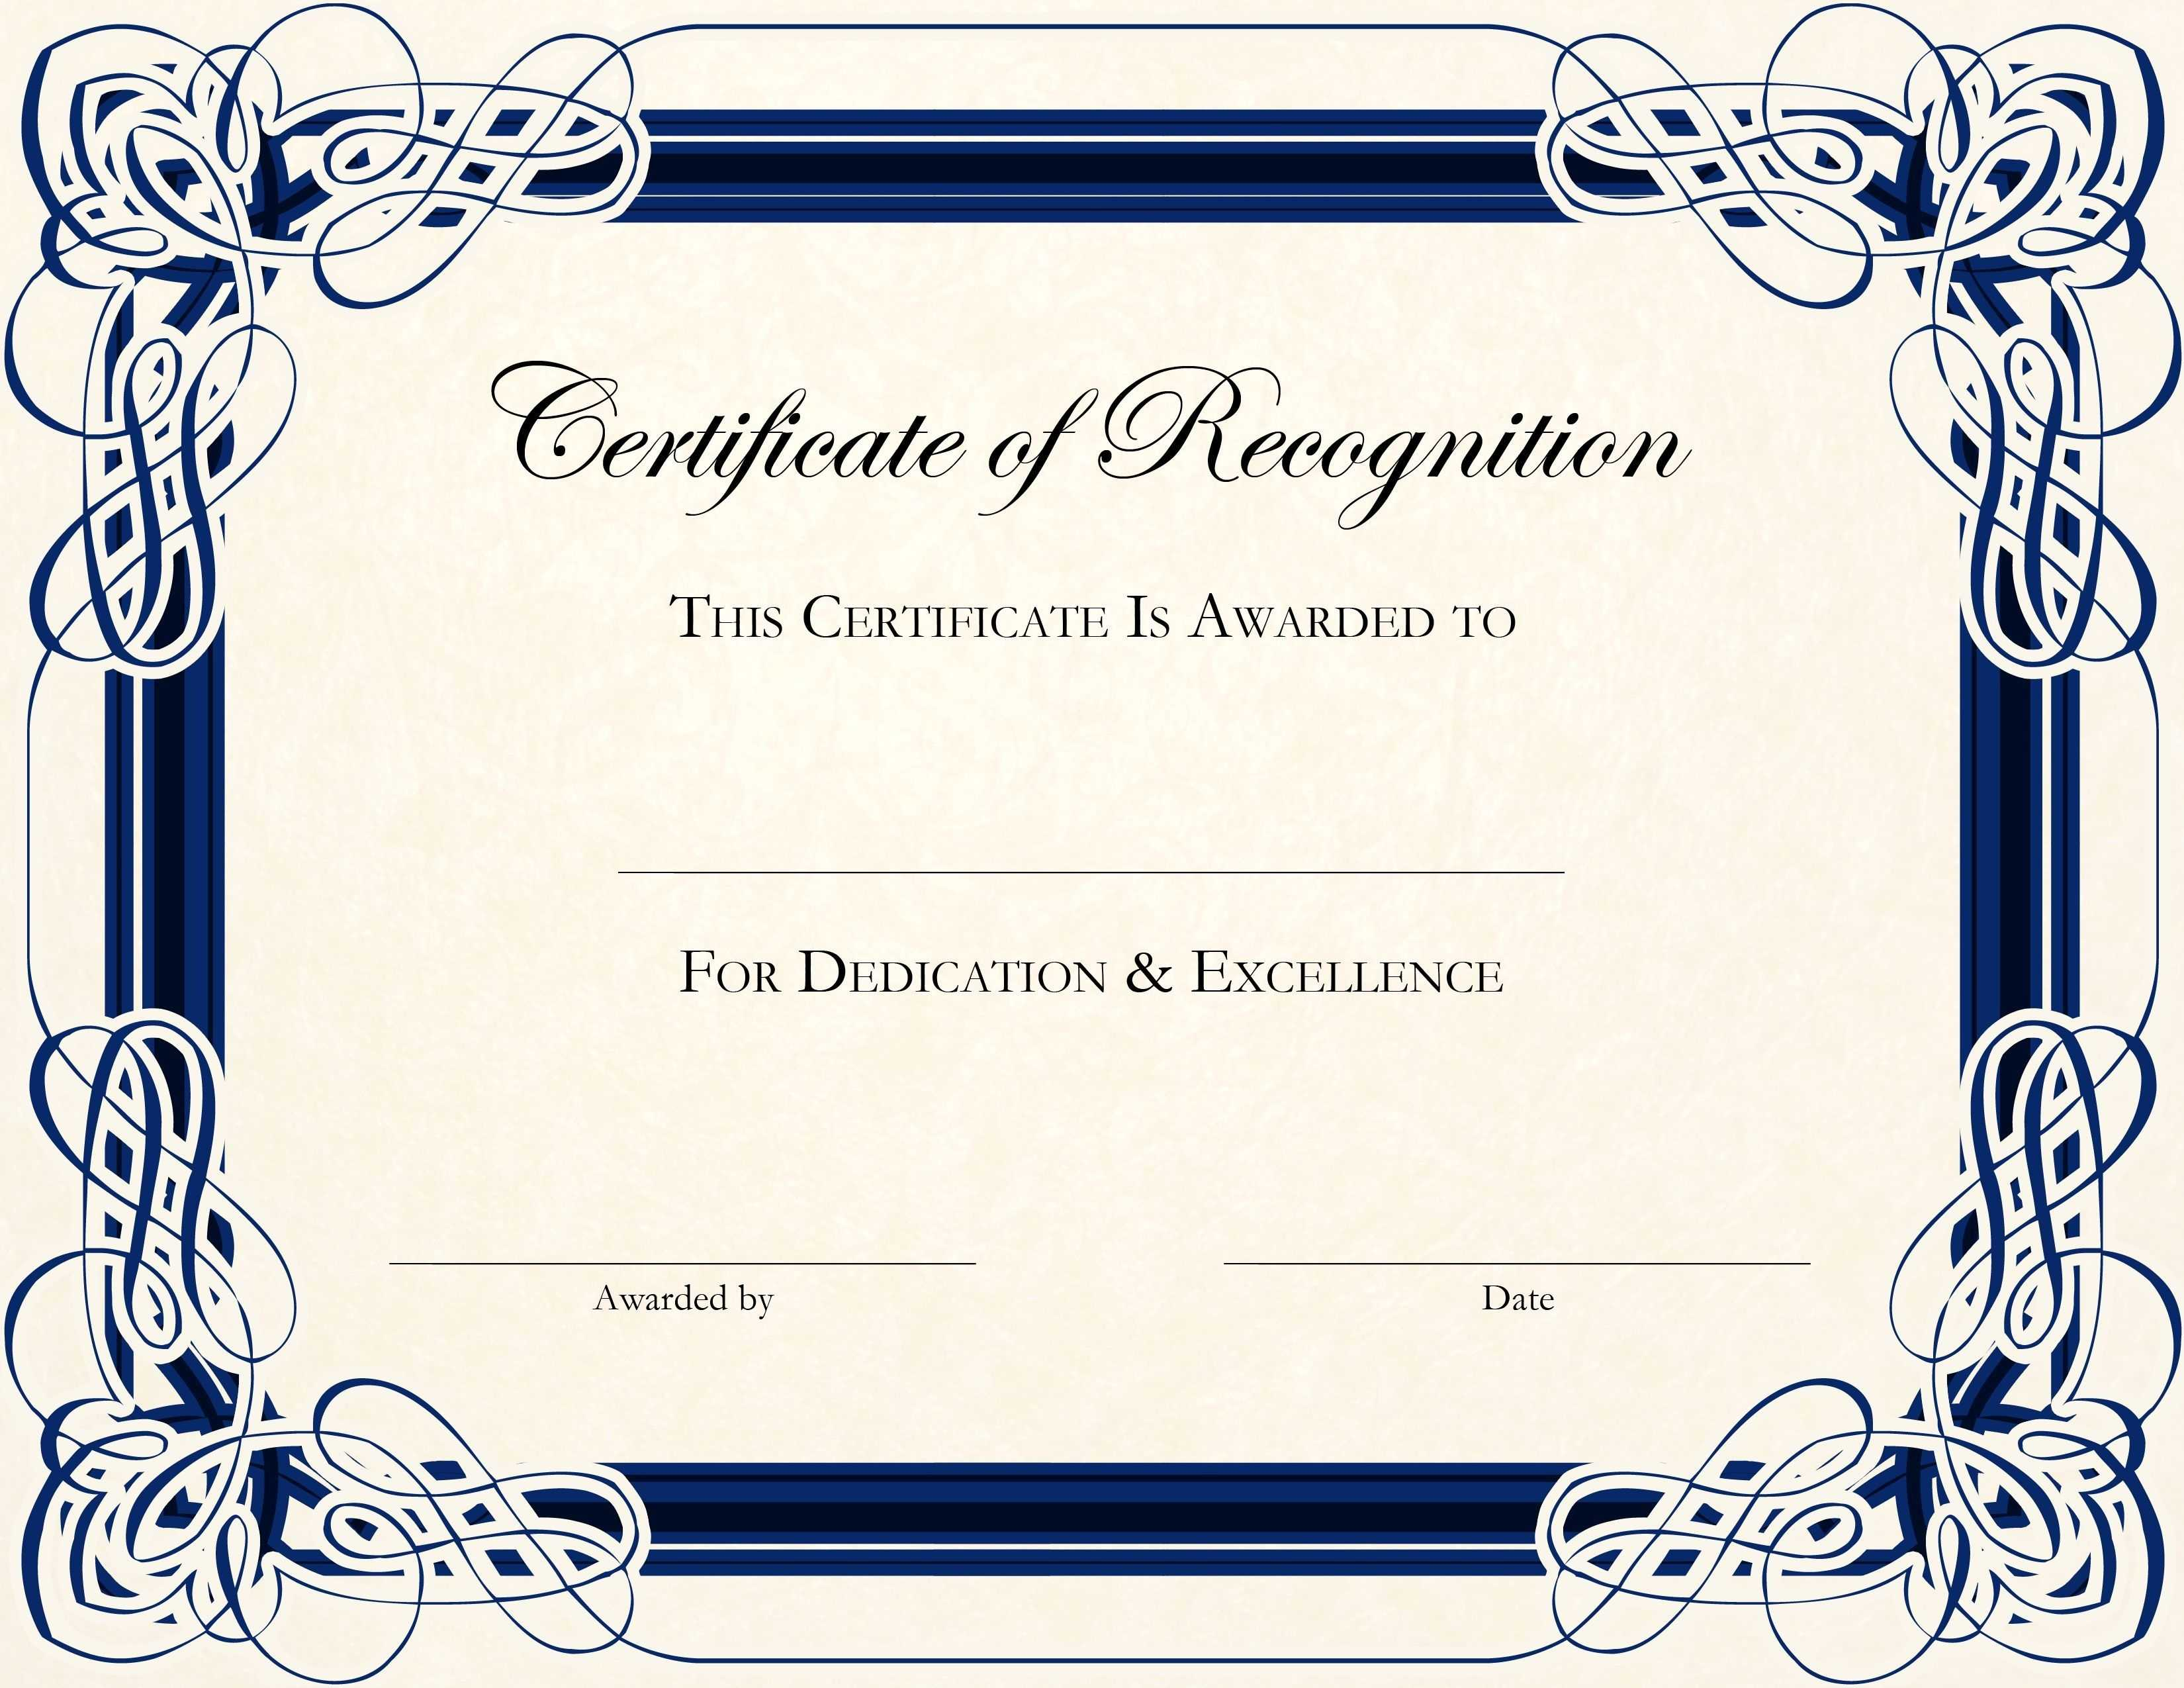 Certificate Of Recognition Template Free The Hidden Agenda For Blank Certificate Templates Free Download